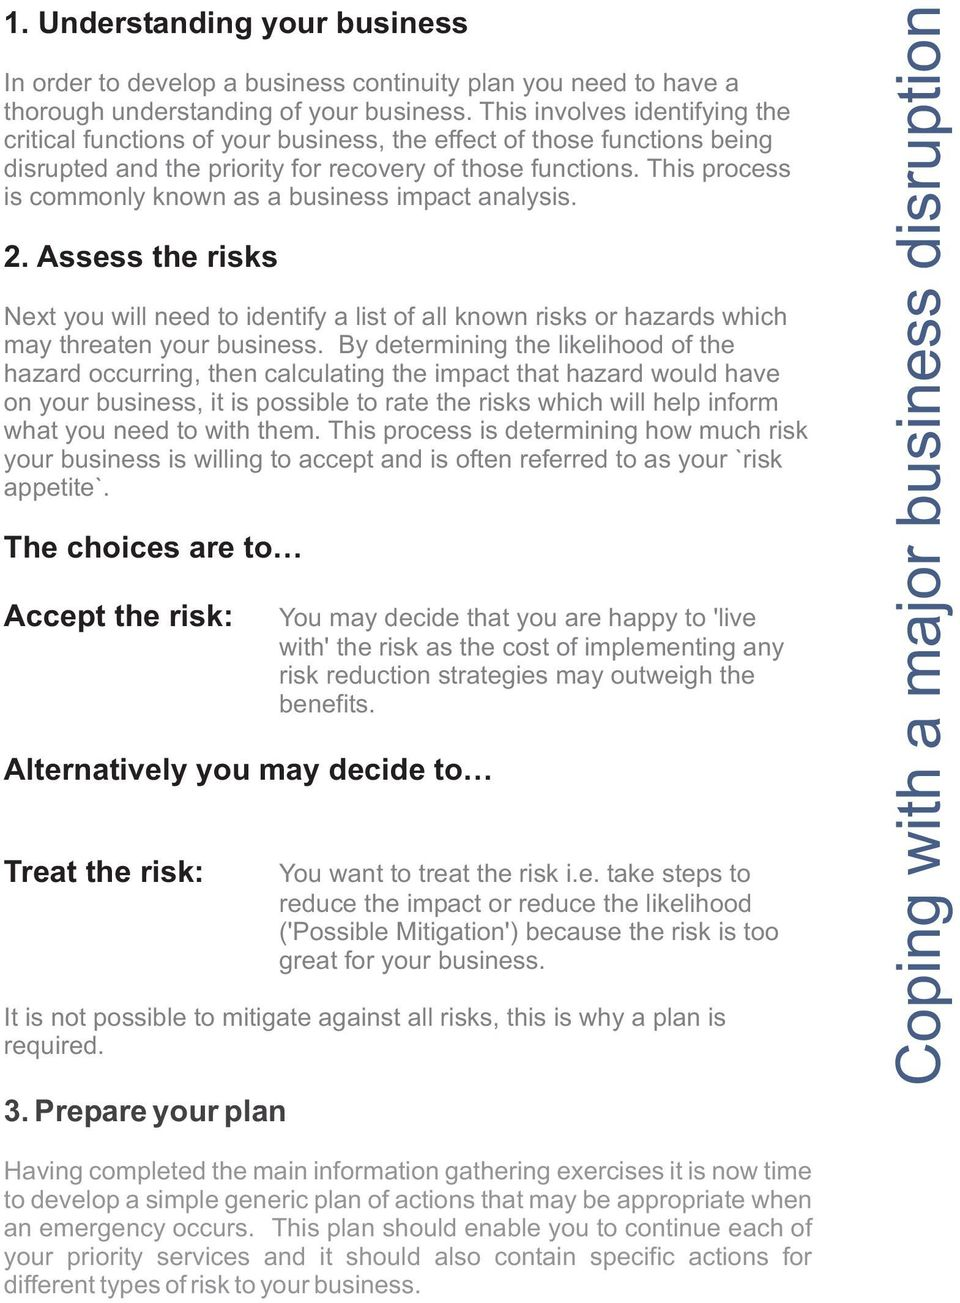 This process is commonly known as a business impact analysis. 2. Assess the risks Next you will need to identify a list of all known risks or hazards which may threaten your business.